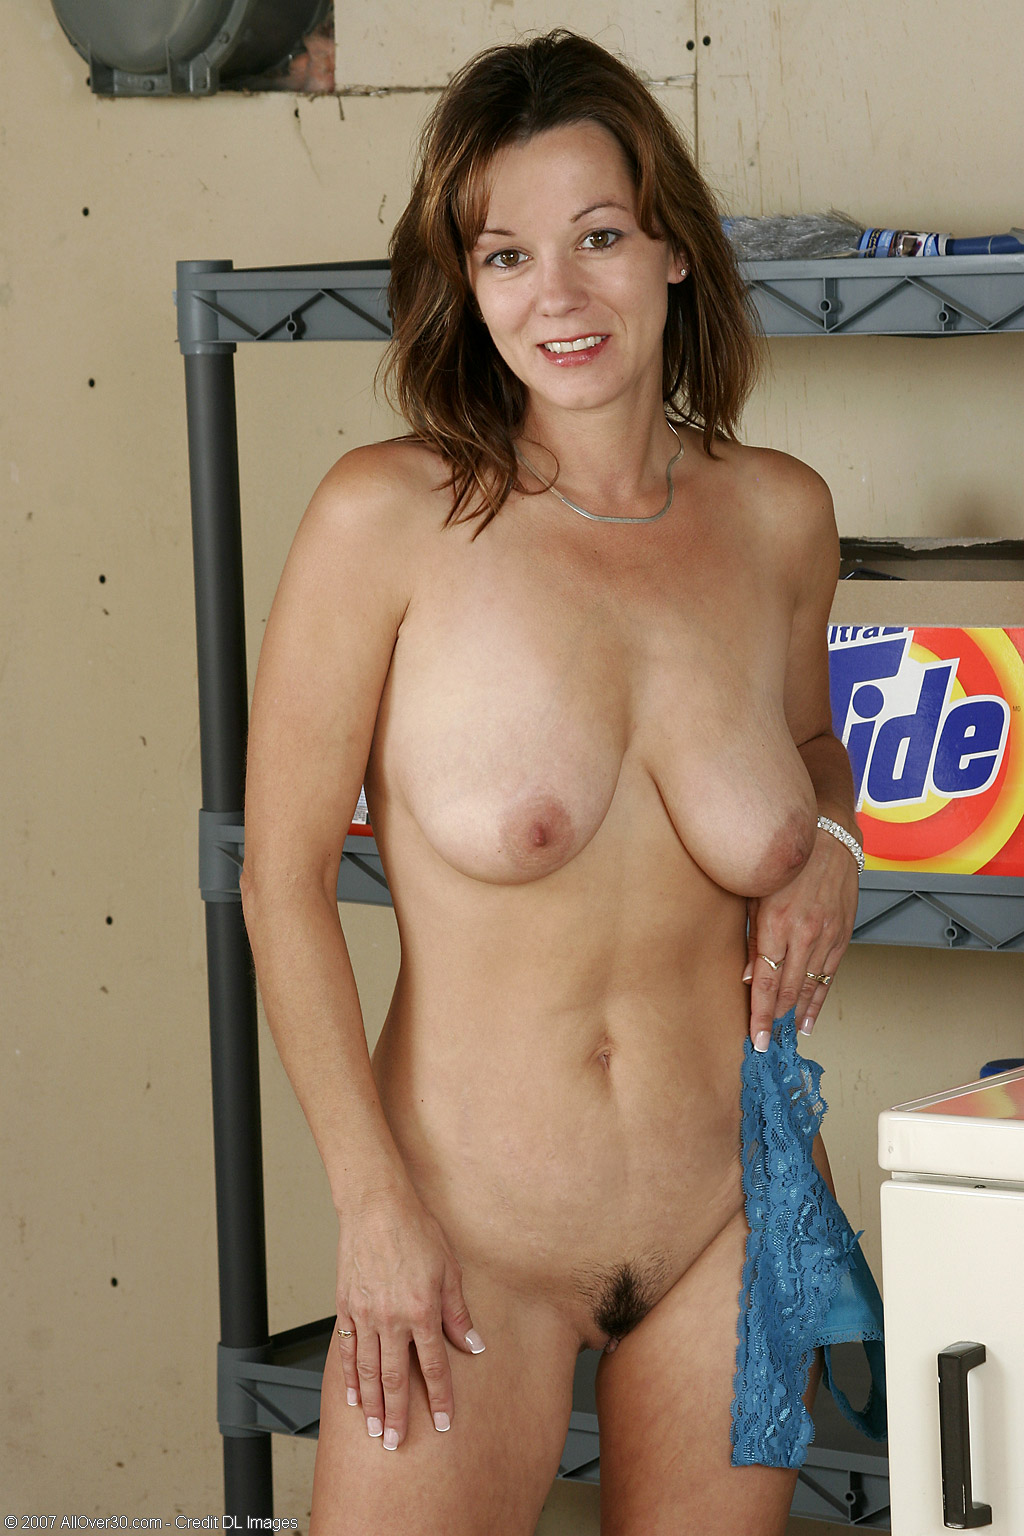 Allover30Freecom - High Quality Mature And Milf Pictures -6843